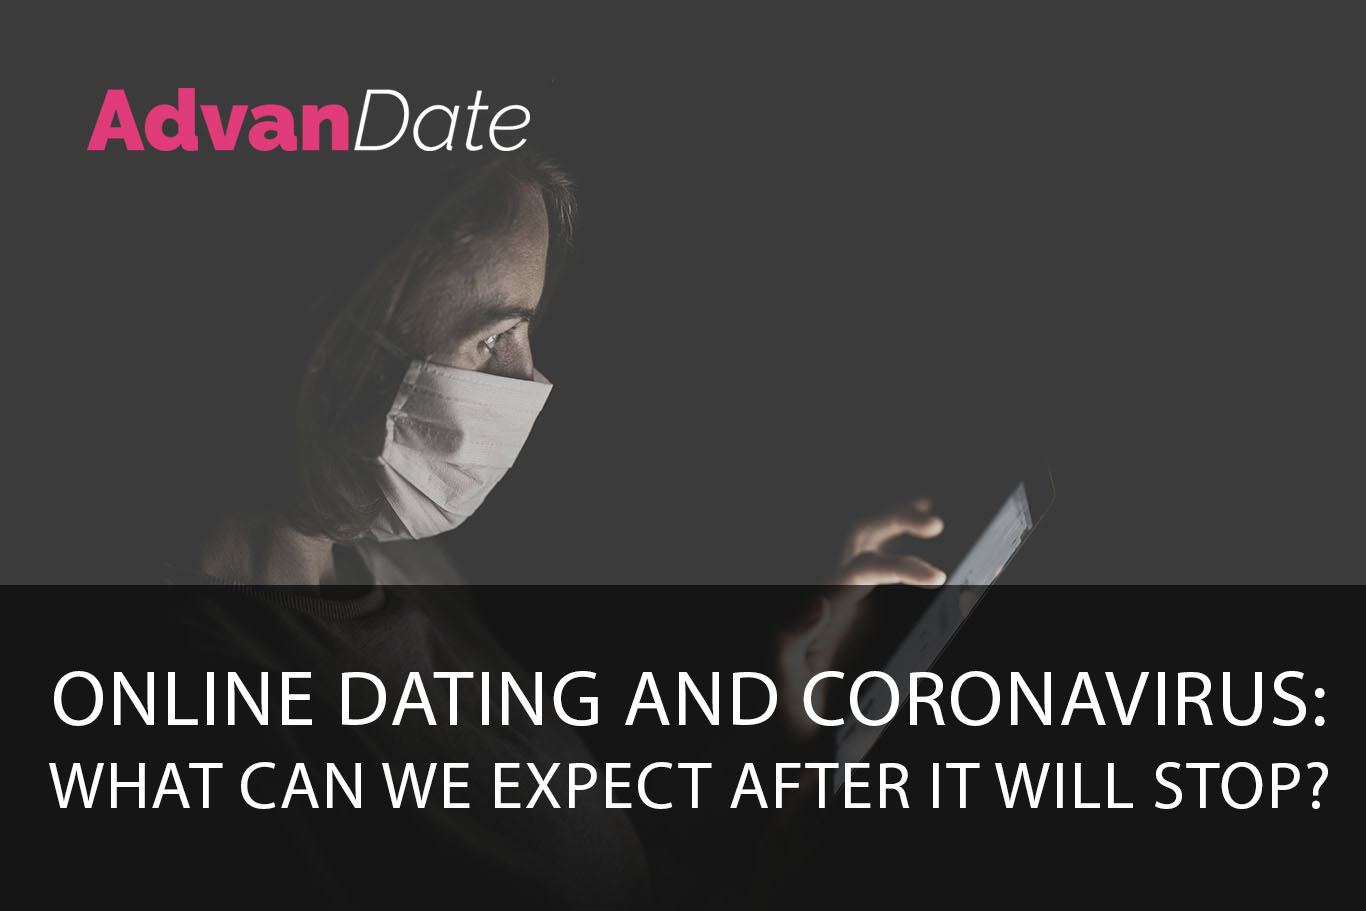 Online dating and Coronavirus. What can we expect after it will stop?